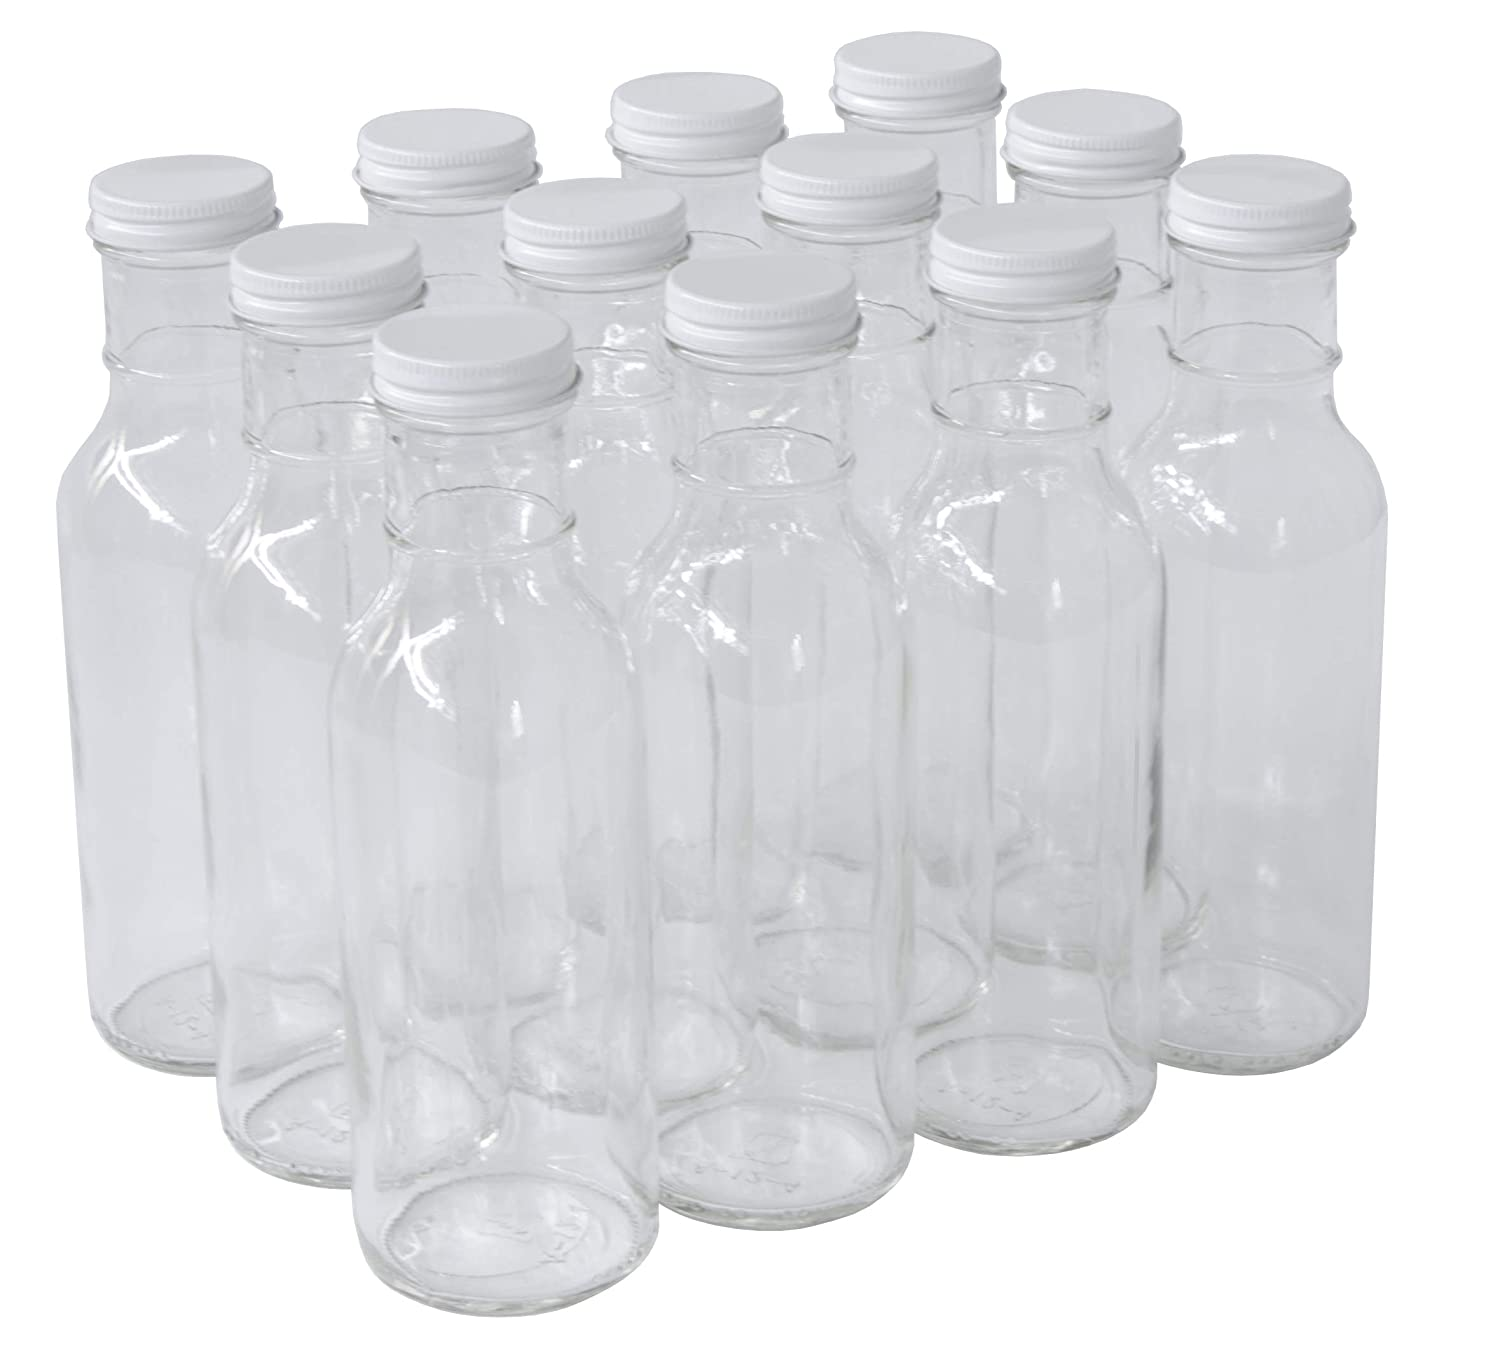 Case of 12 with White Metal Lids North Mountain Supply 12 Ounce Glass Ring-Neck Sauce Bottle 38 CT